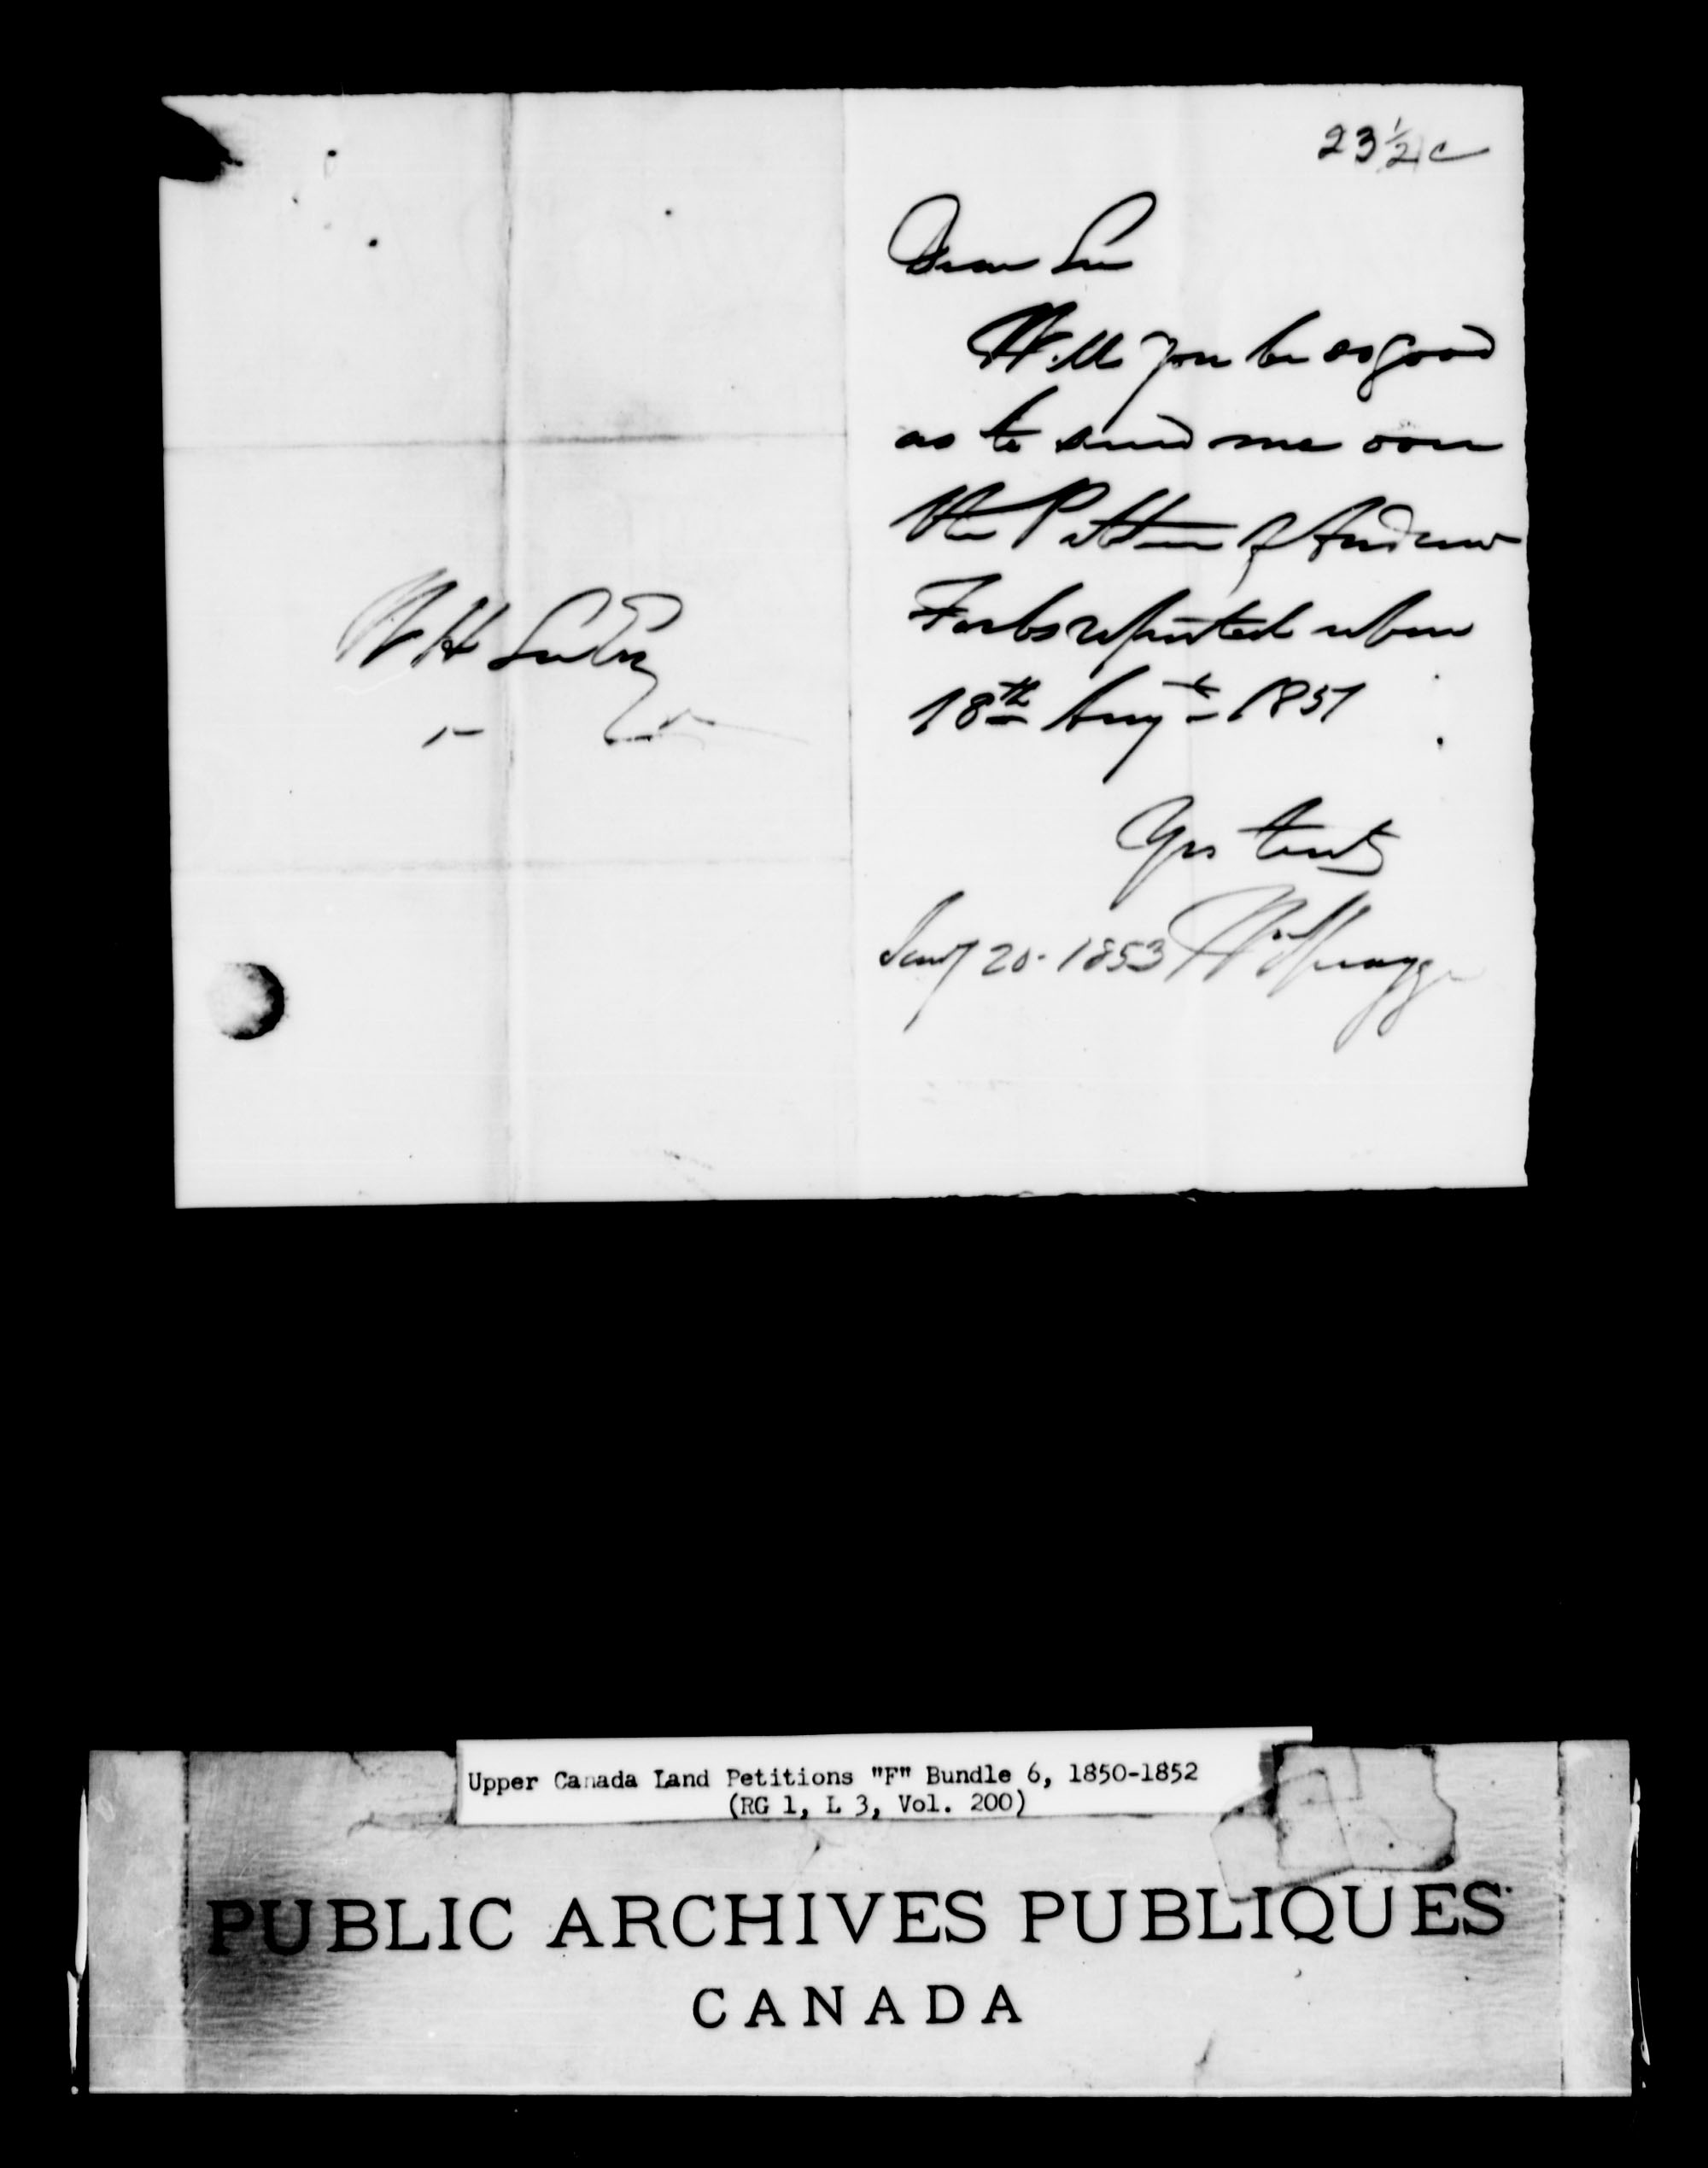 Title: Upper Canada Land Petitions (1763-1865) - Mikan Number: 205131 - Microform: c-2025